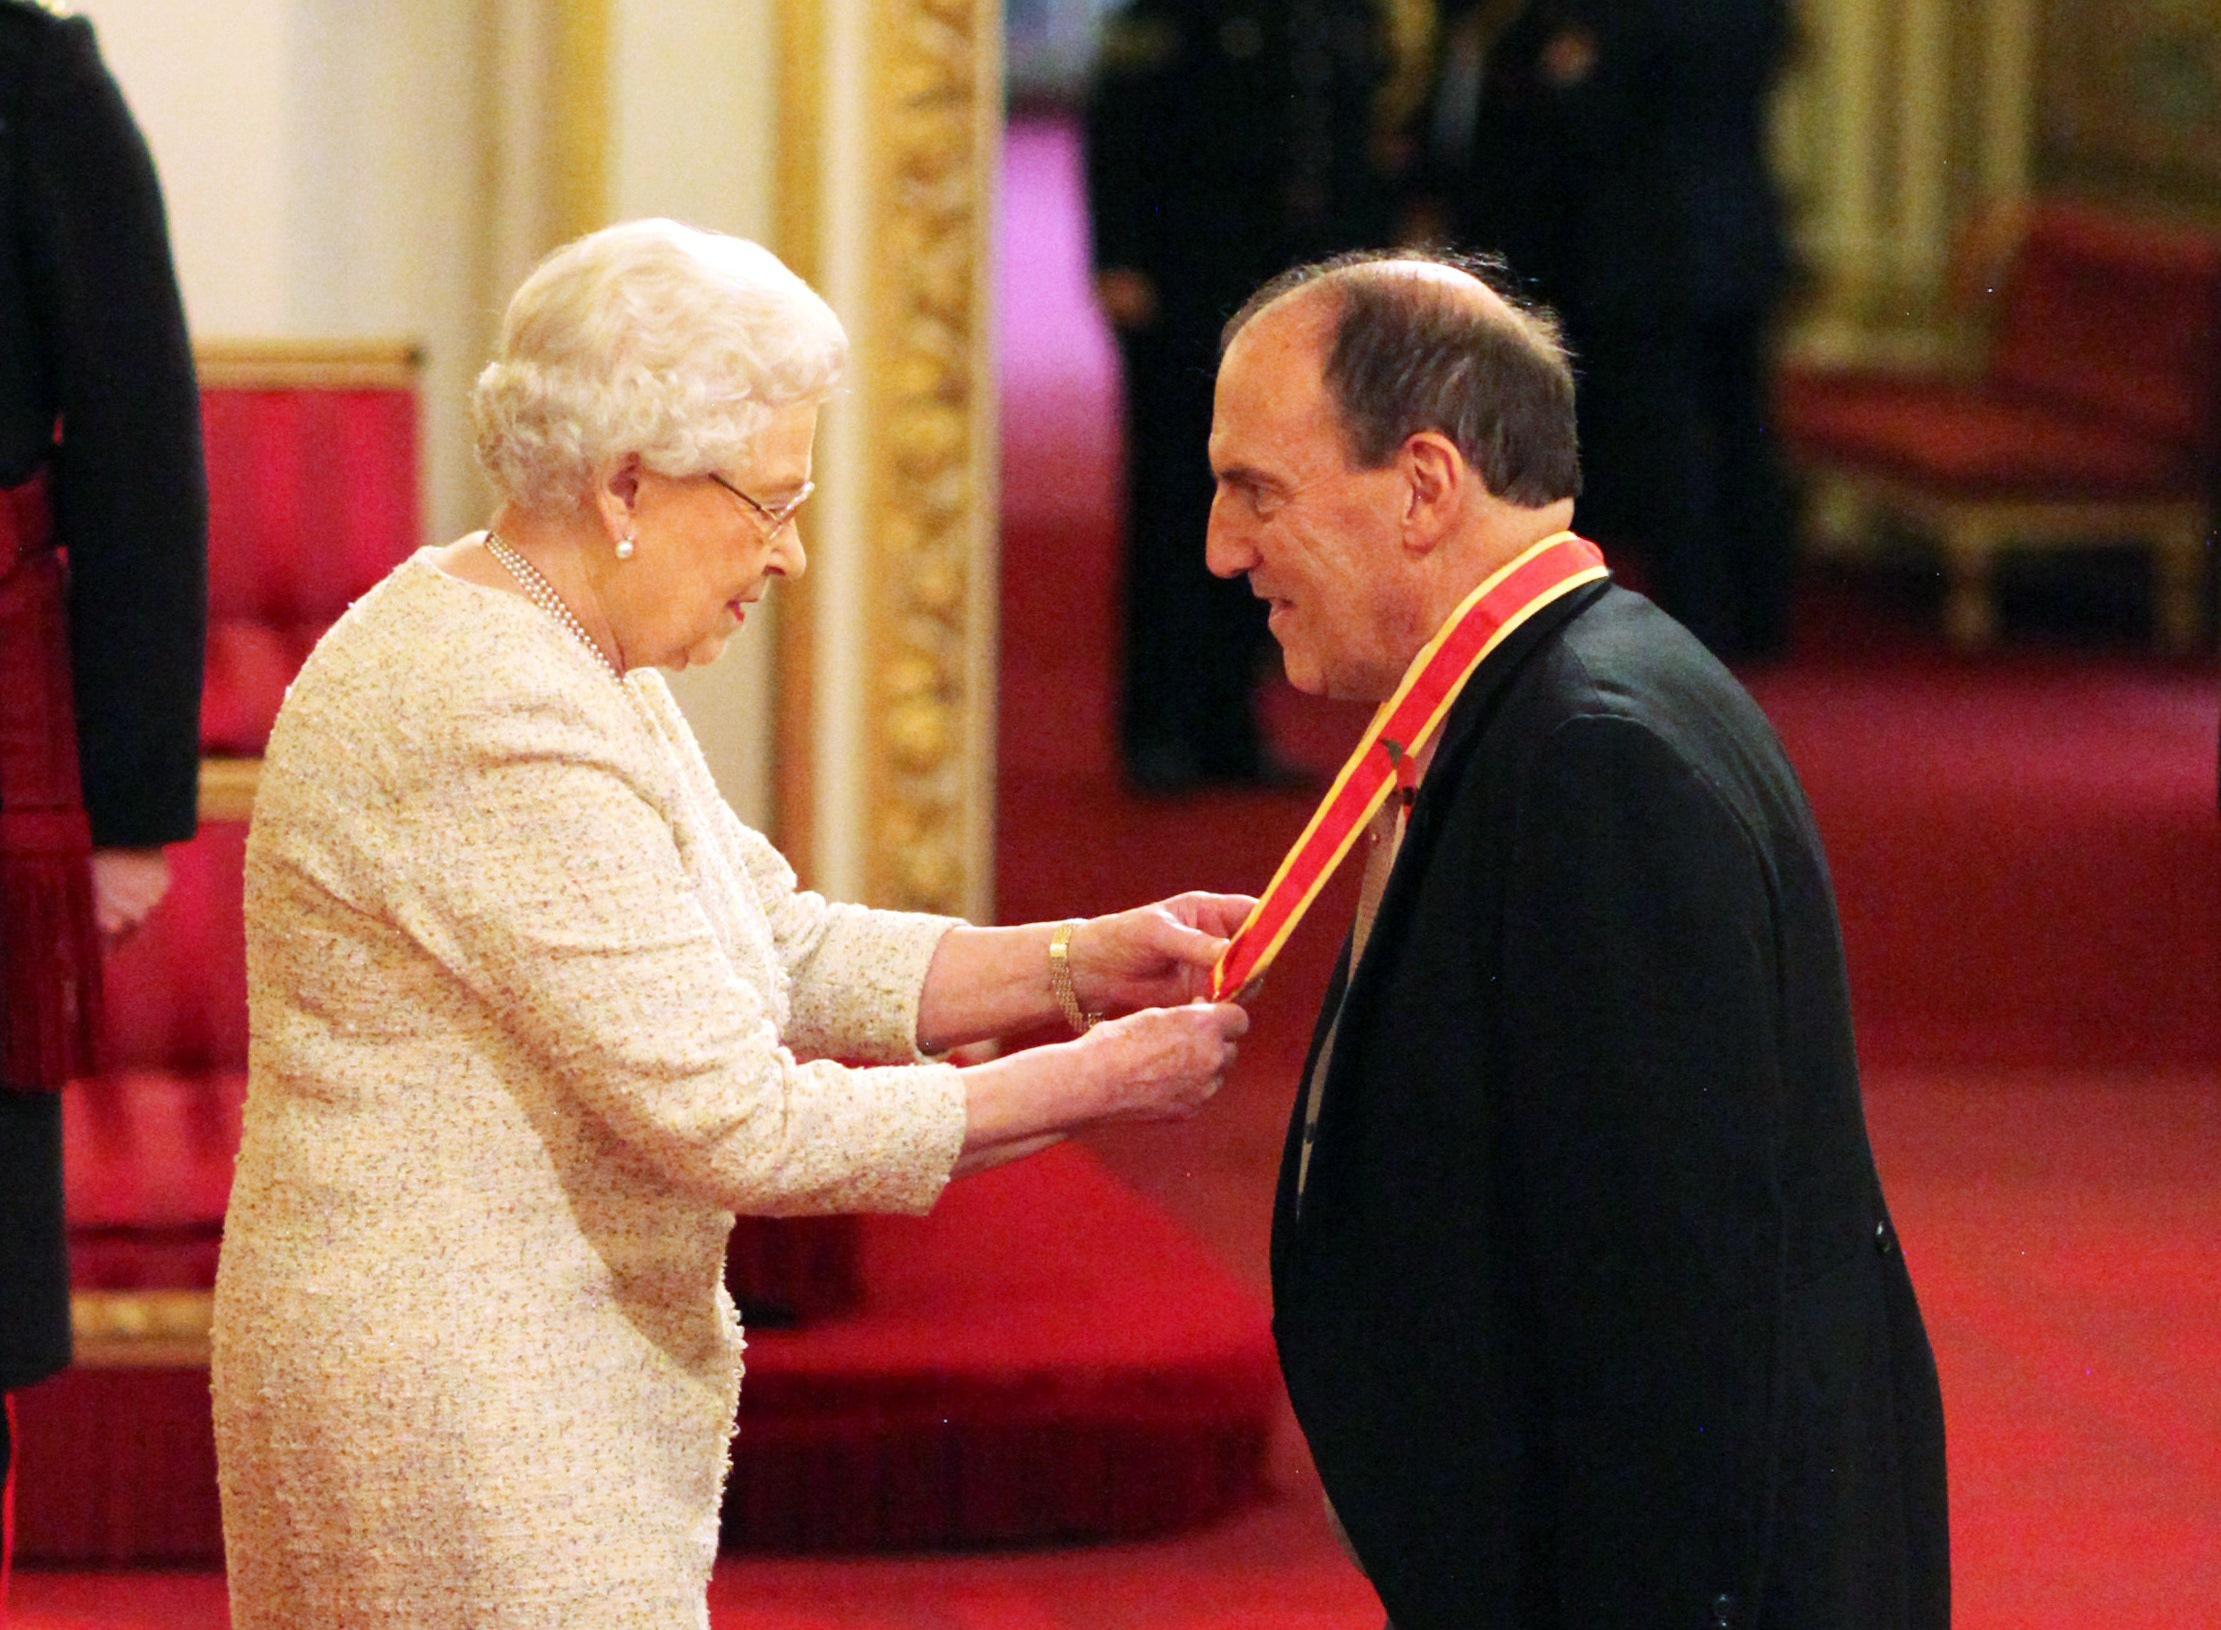 Sir Simon Hughes from London is made a Knight Bachelor of the British Empire from Queen Elizabeth II at an Investiture Ceremony at Buckingham Palace